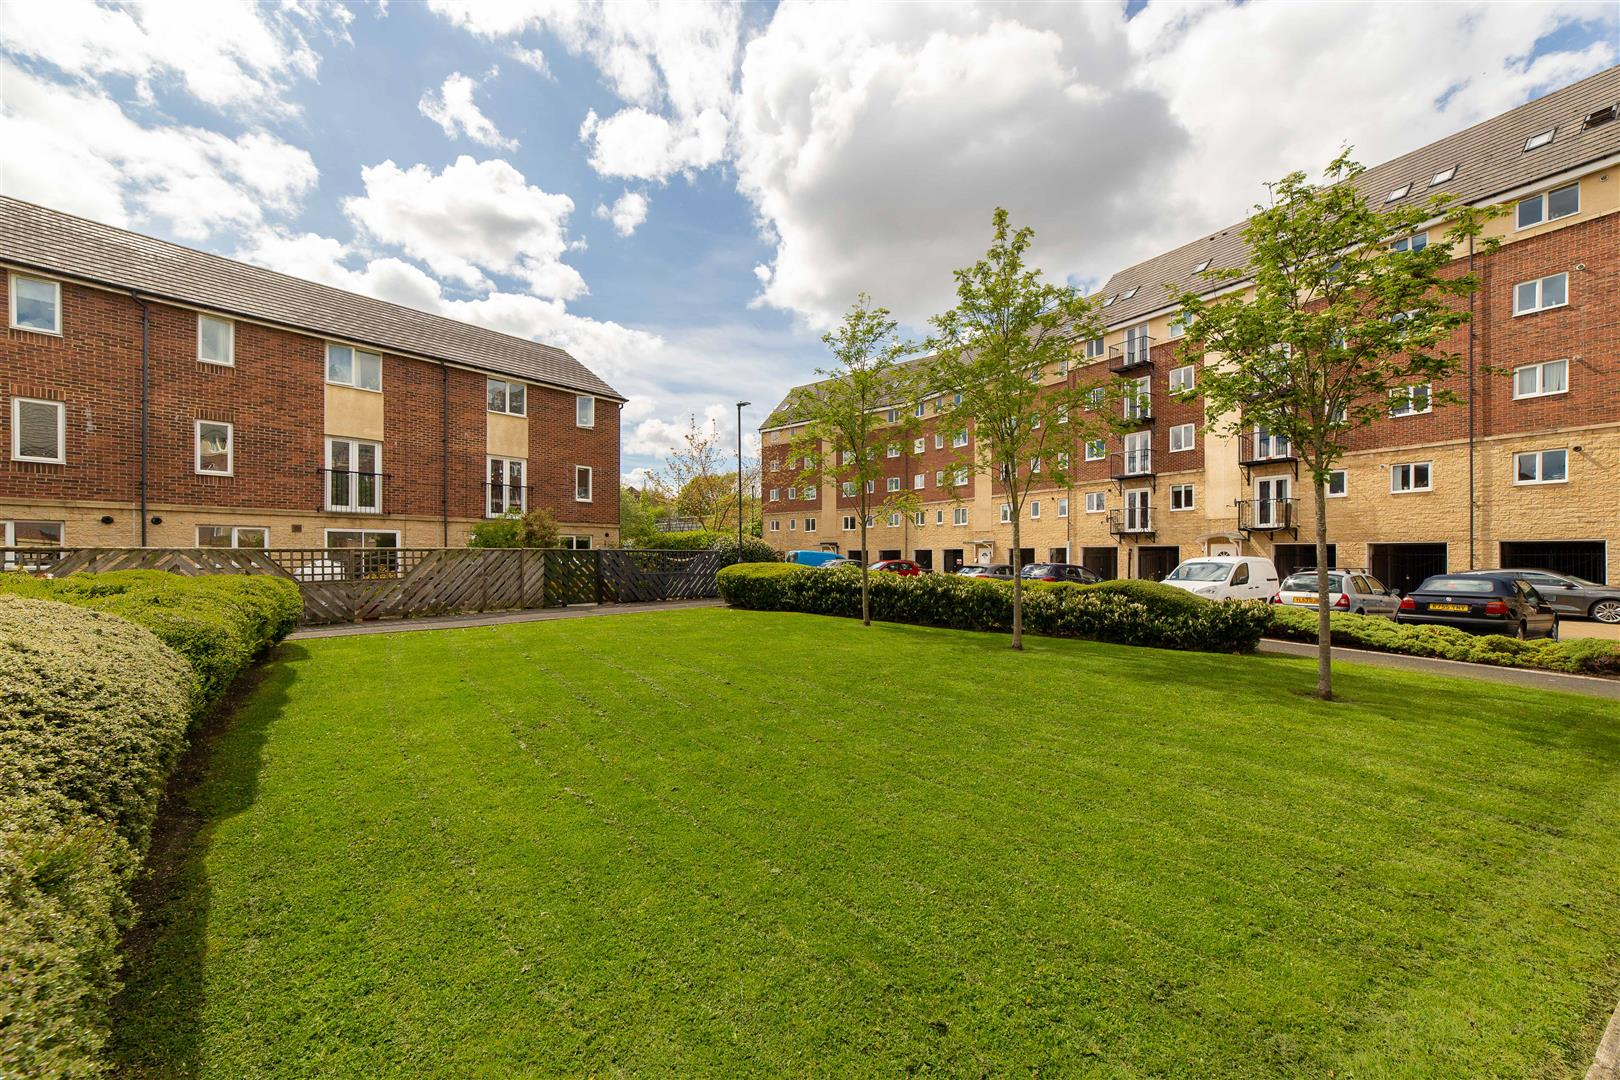 2 bed apartment for sale in Chillingham Road, Heaton - Property Image 1